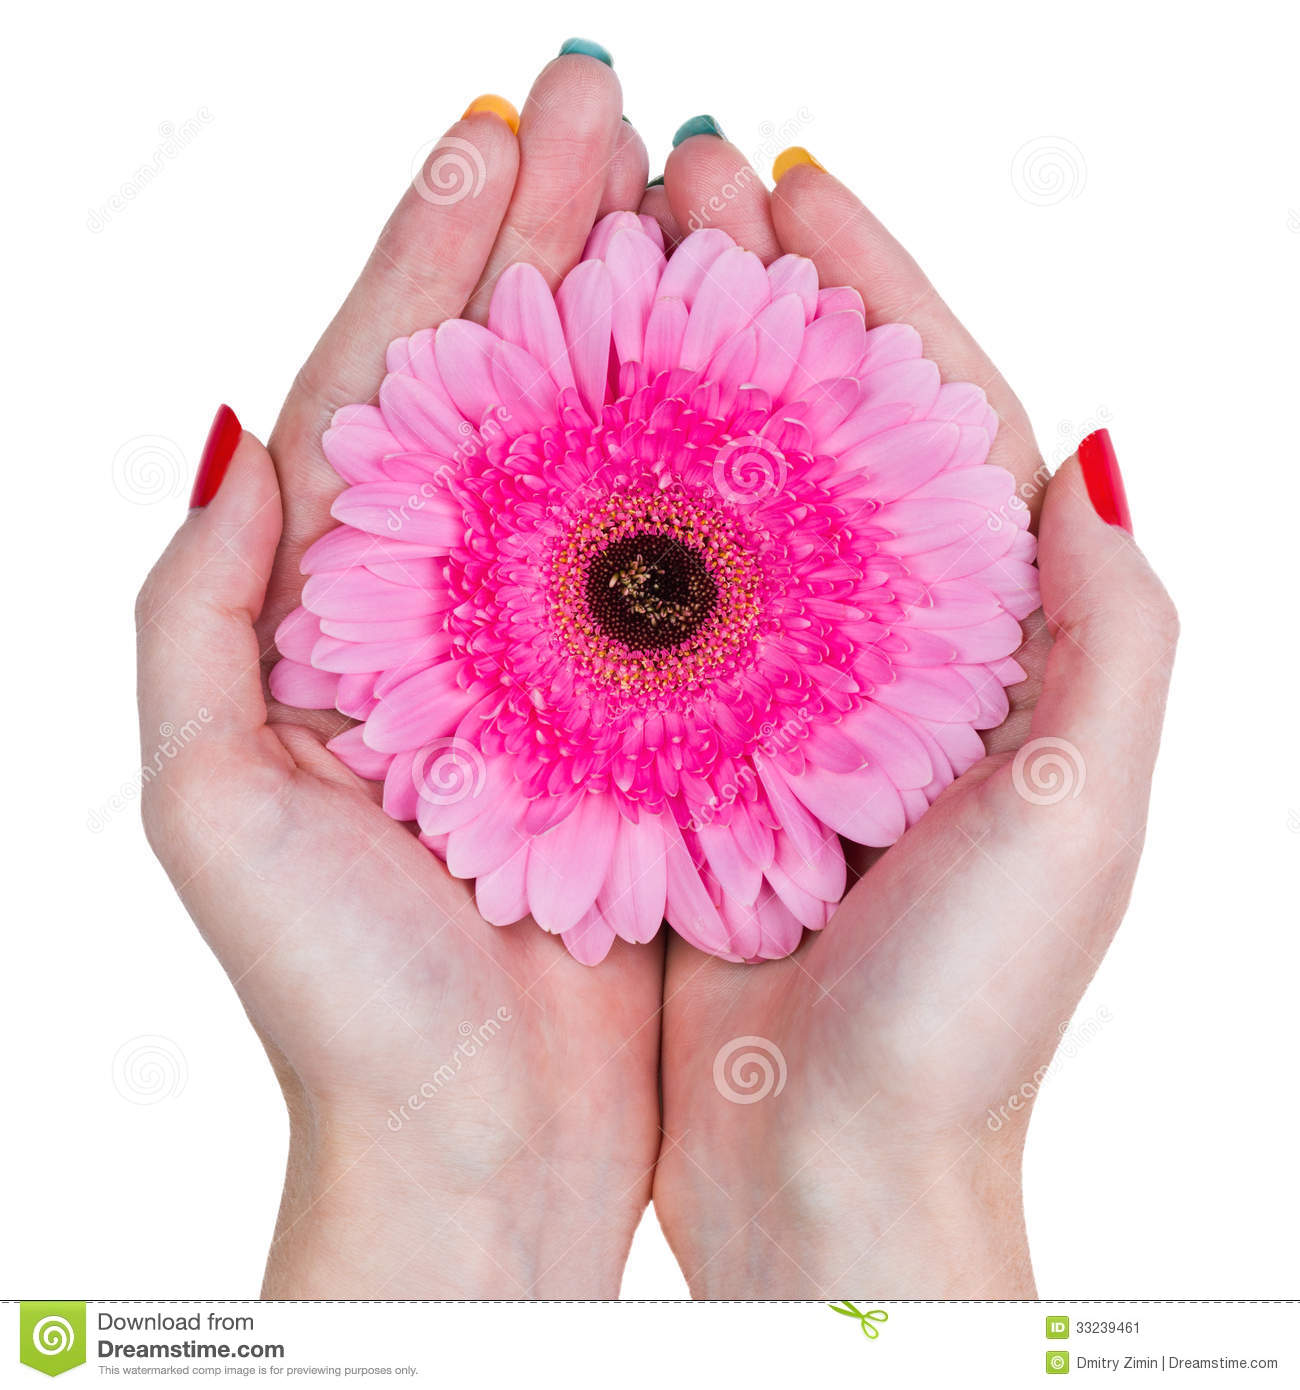 Woman Hands Holding A Pink Flower Isolated On White Background Stock